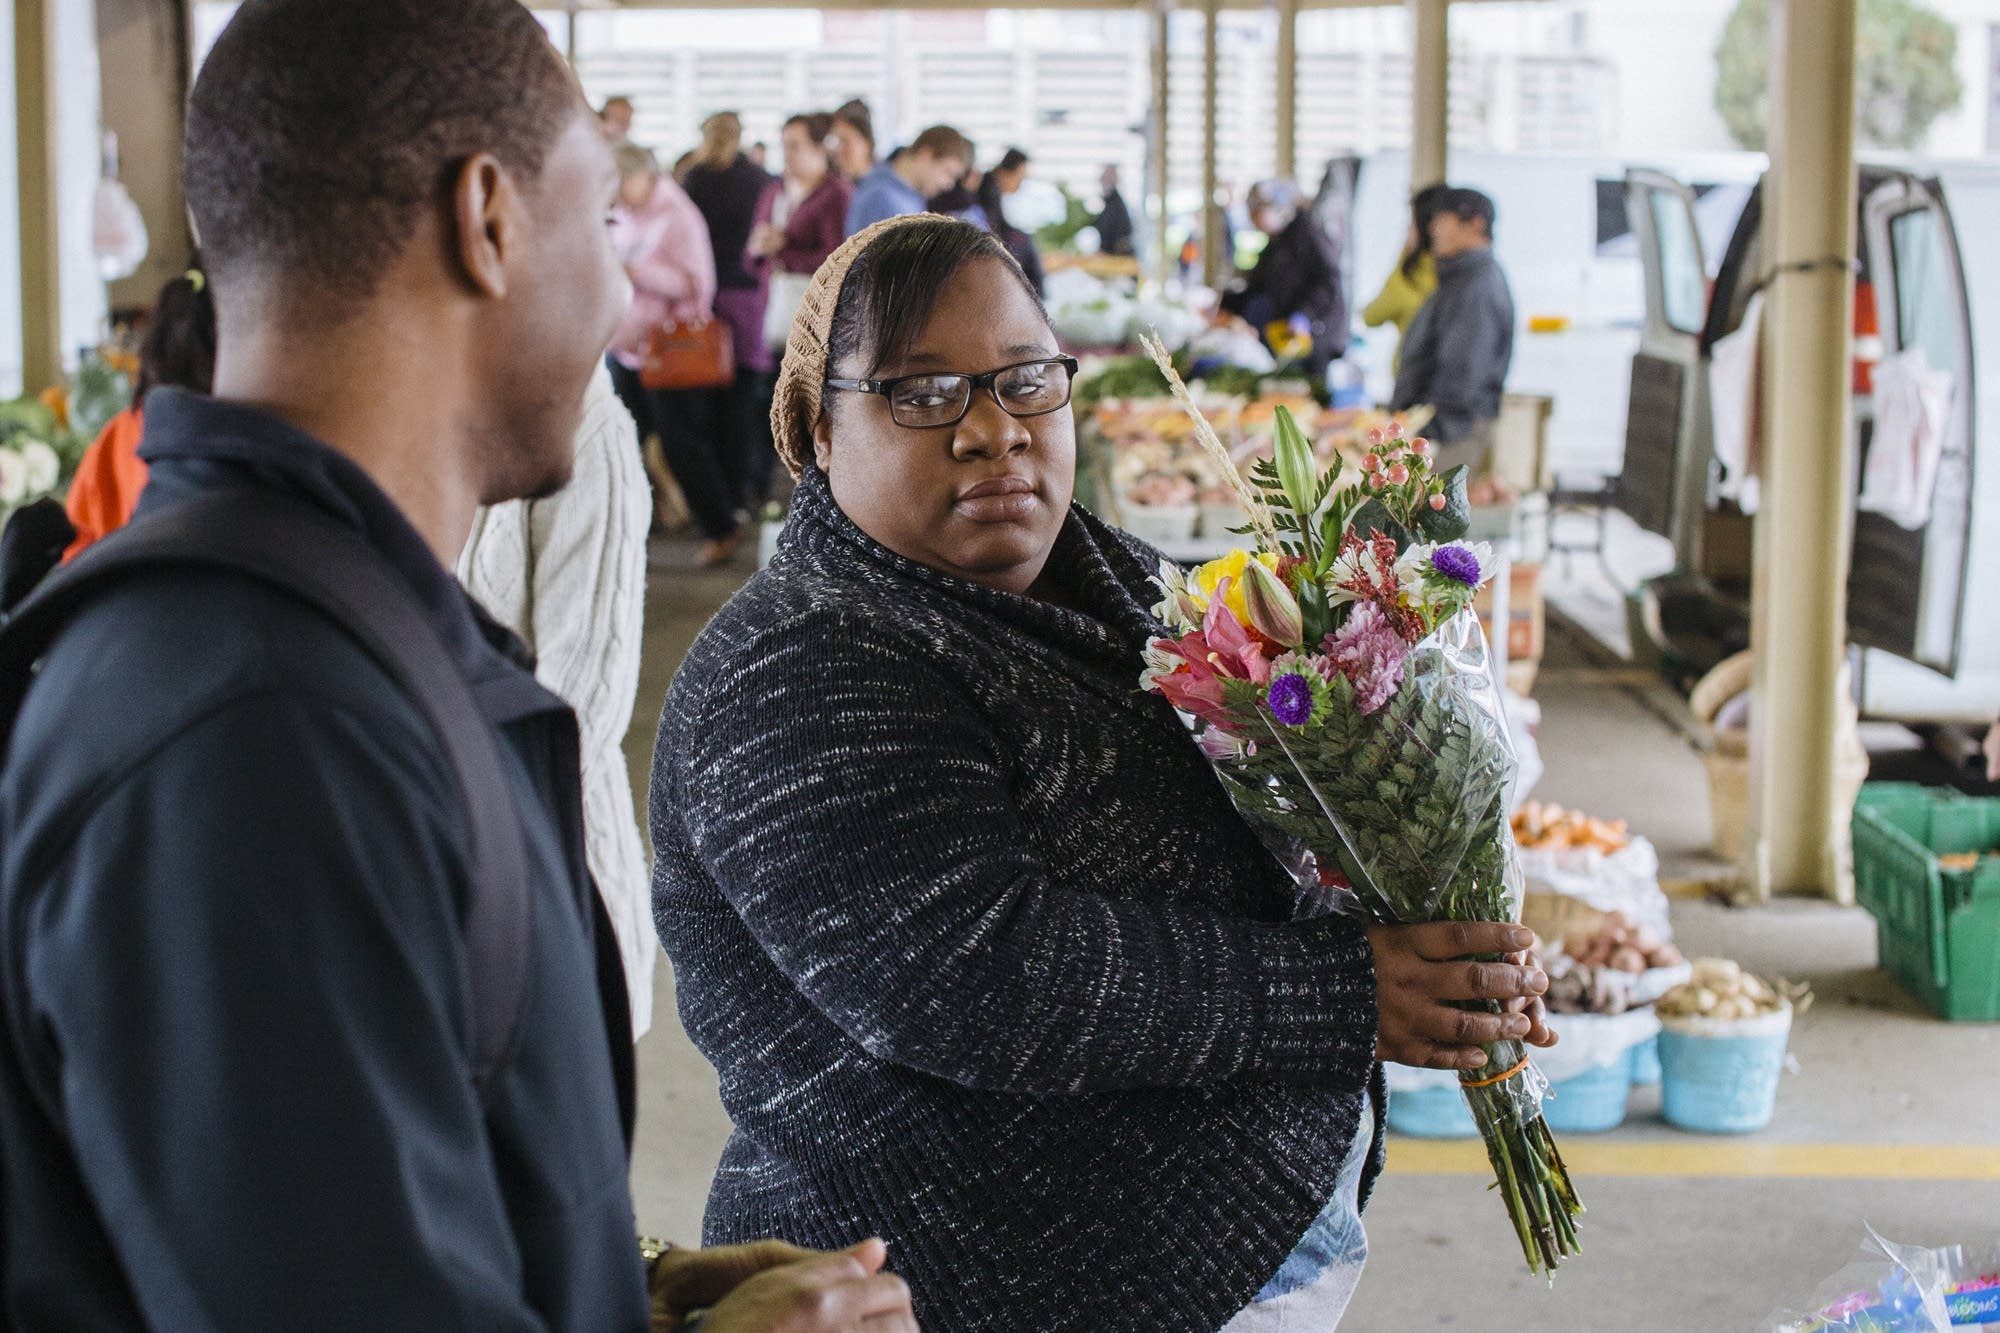 Eli and Shaundelle buy flowers.